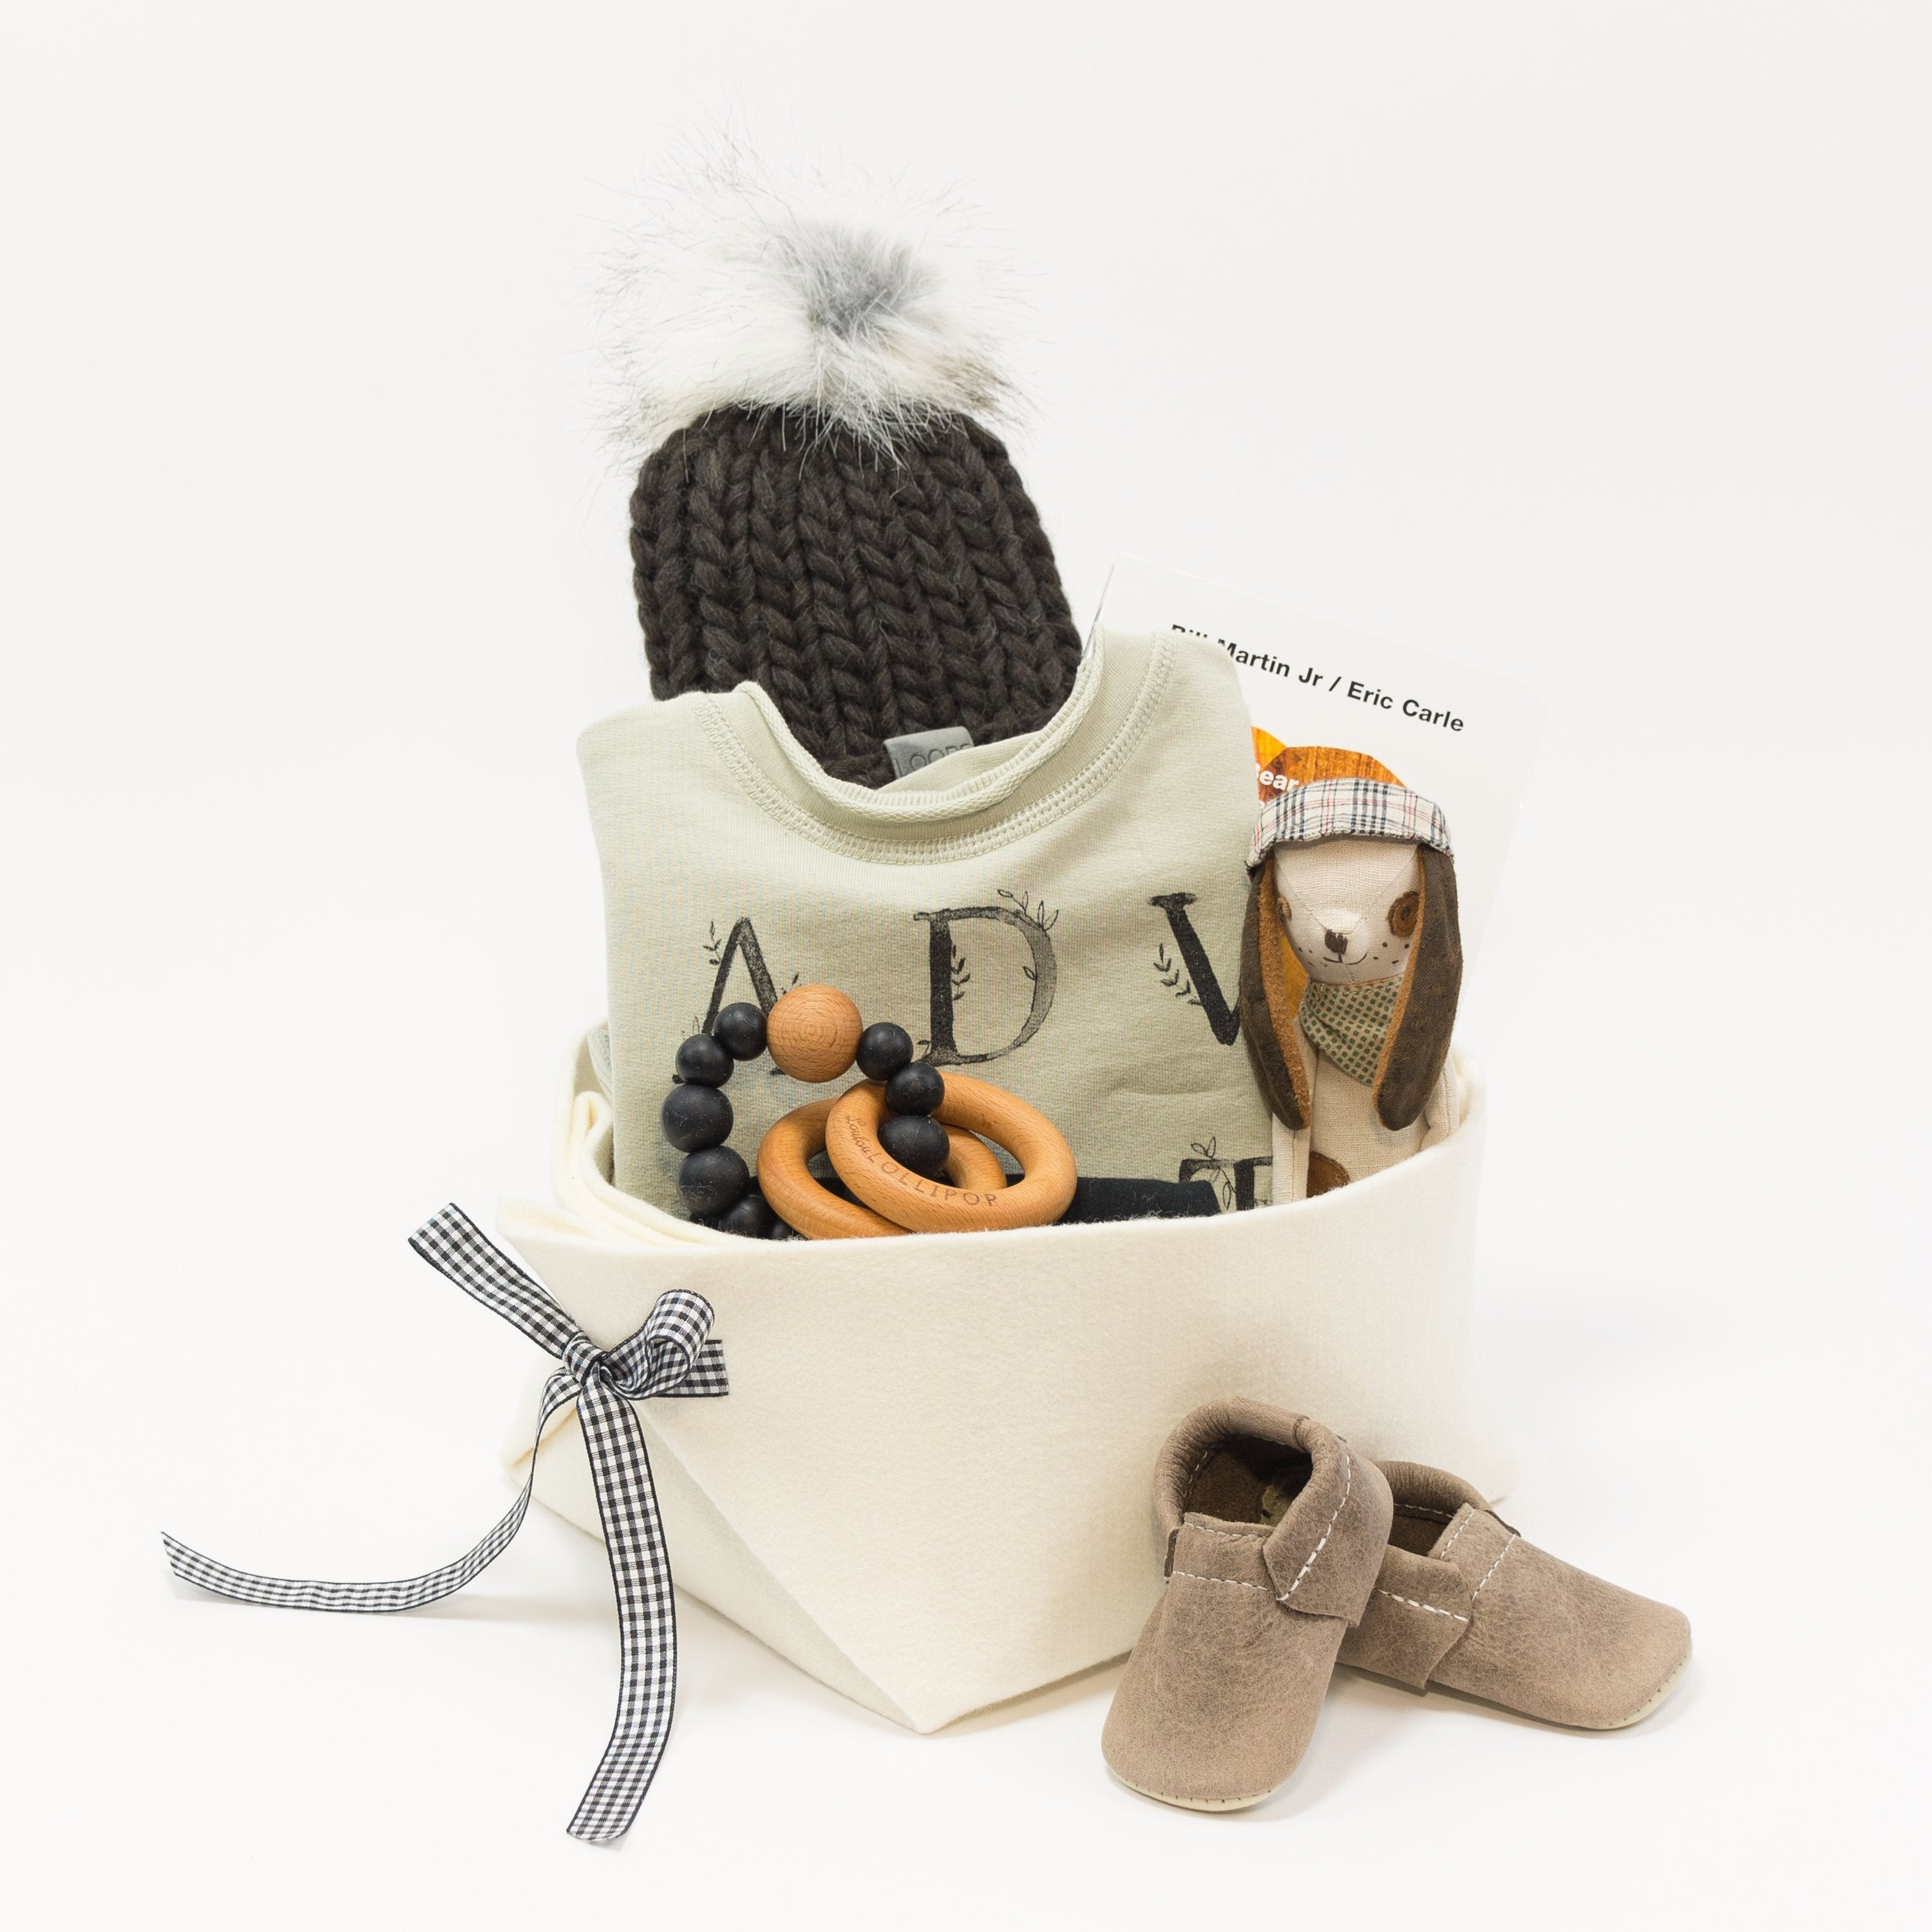 Rylee and Cru Cool Baby Gift Basket at Bonjour Baby Baskets